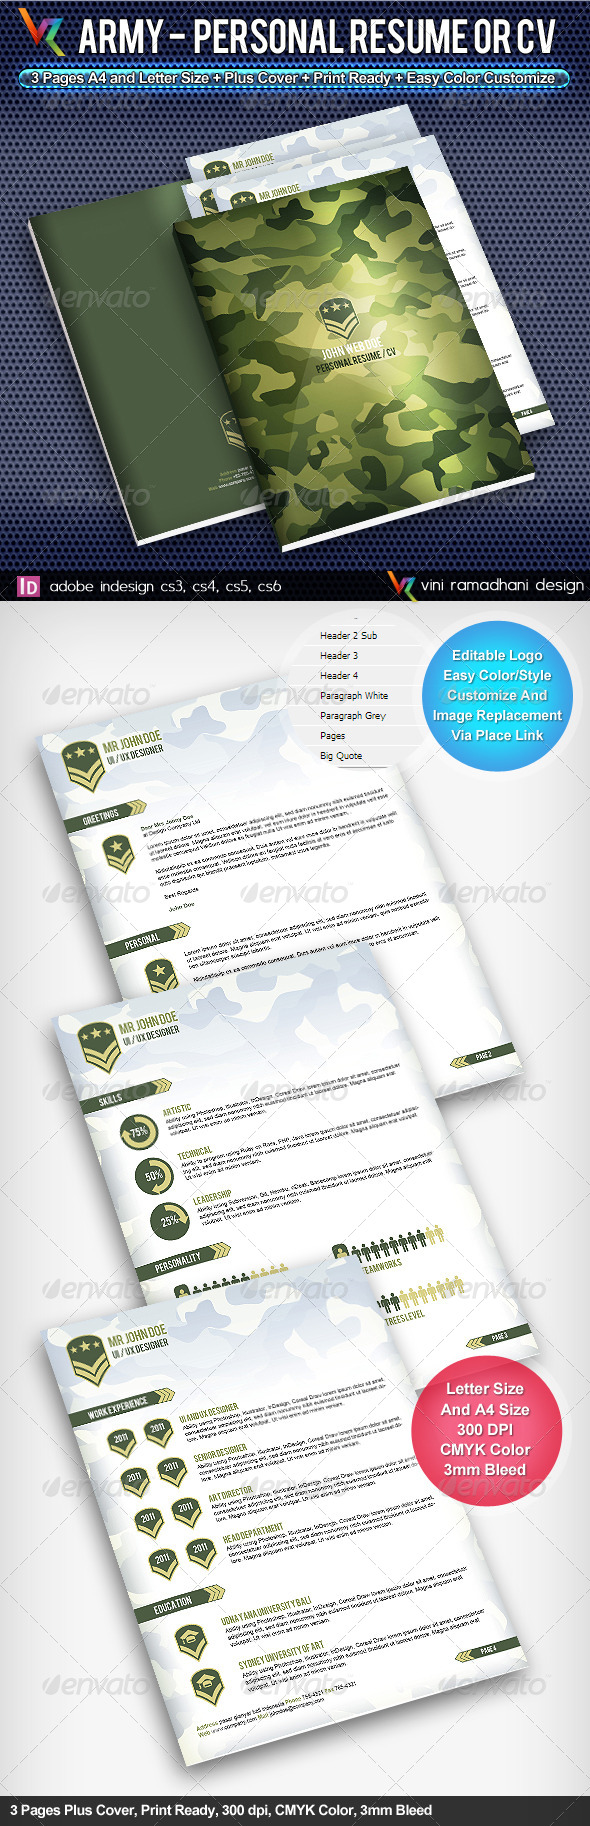 GraphicRiver Army Personal Resume Or CV 4139869